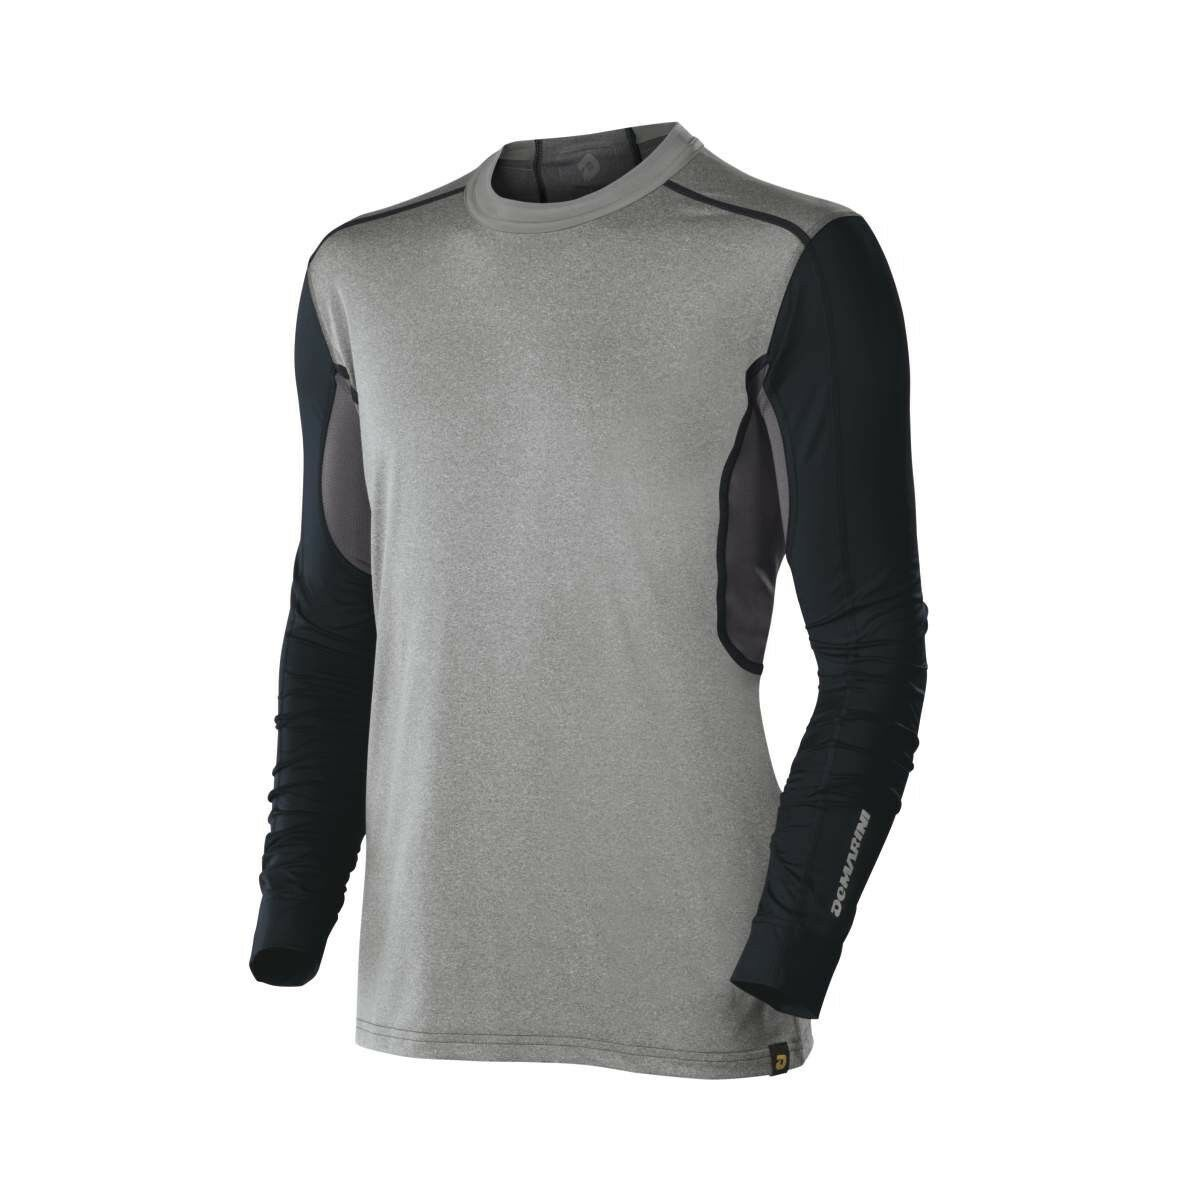 9b1f1ed5aa0 DeMarini Mens Comotion Game Day Long Sleeve T Shirt Grey Navy Large (Cart)